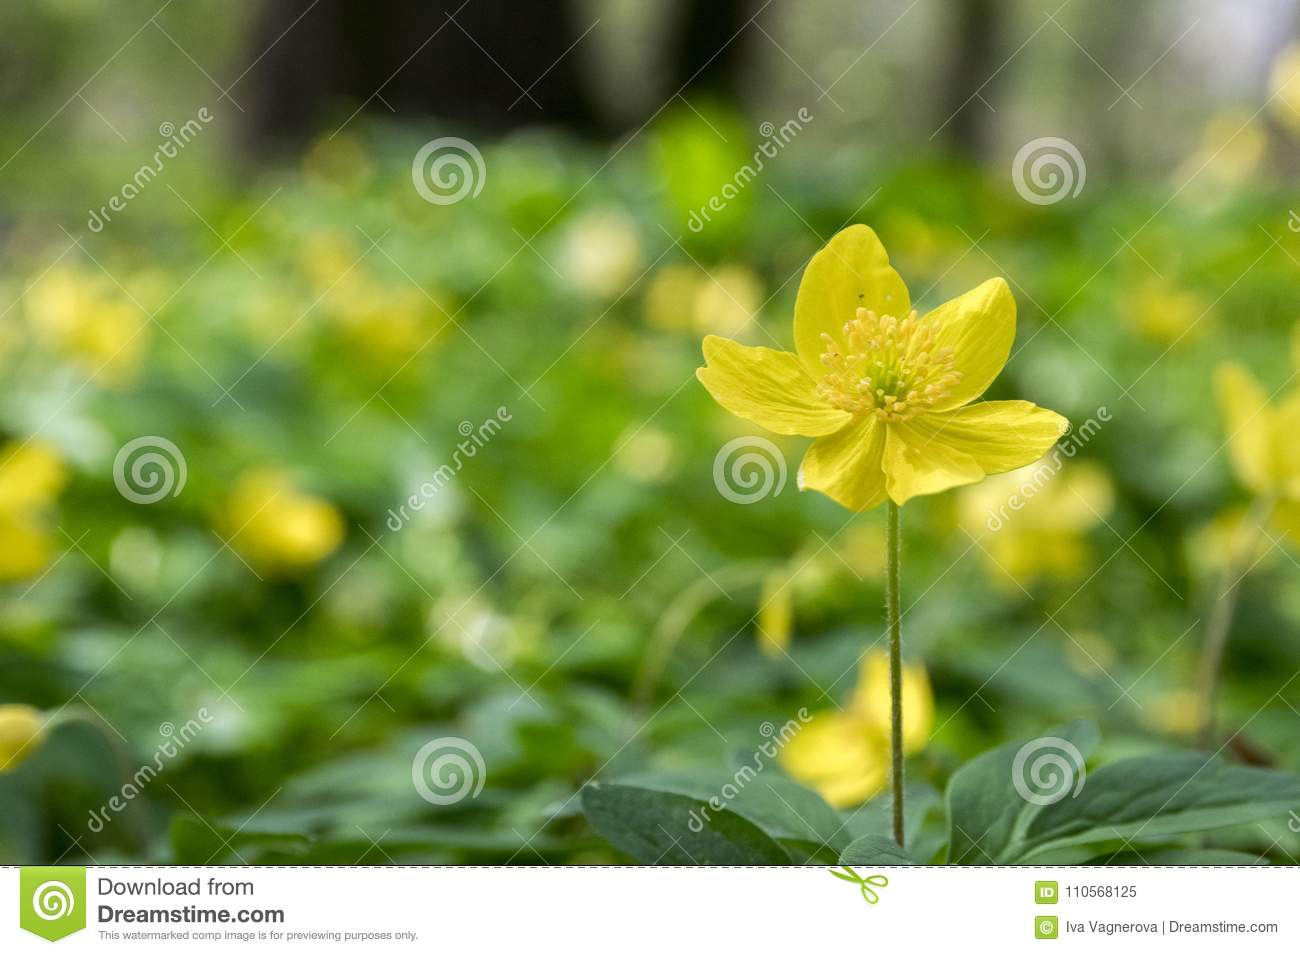 Anemone Ranunculoides Spring Yellow Flowers In Bloom Stock Image